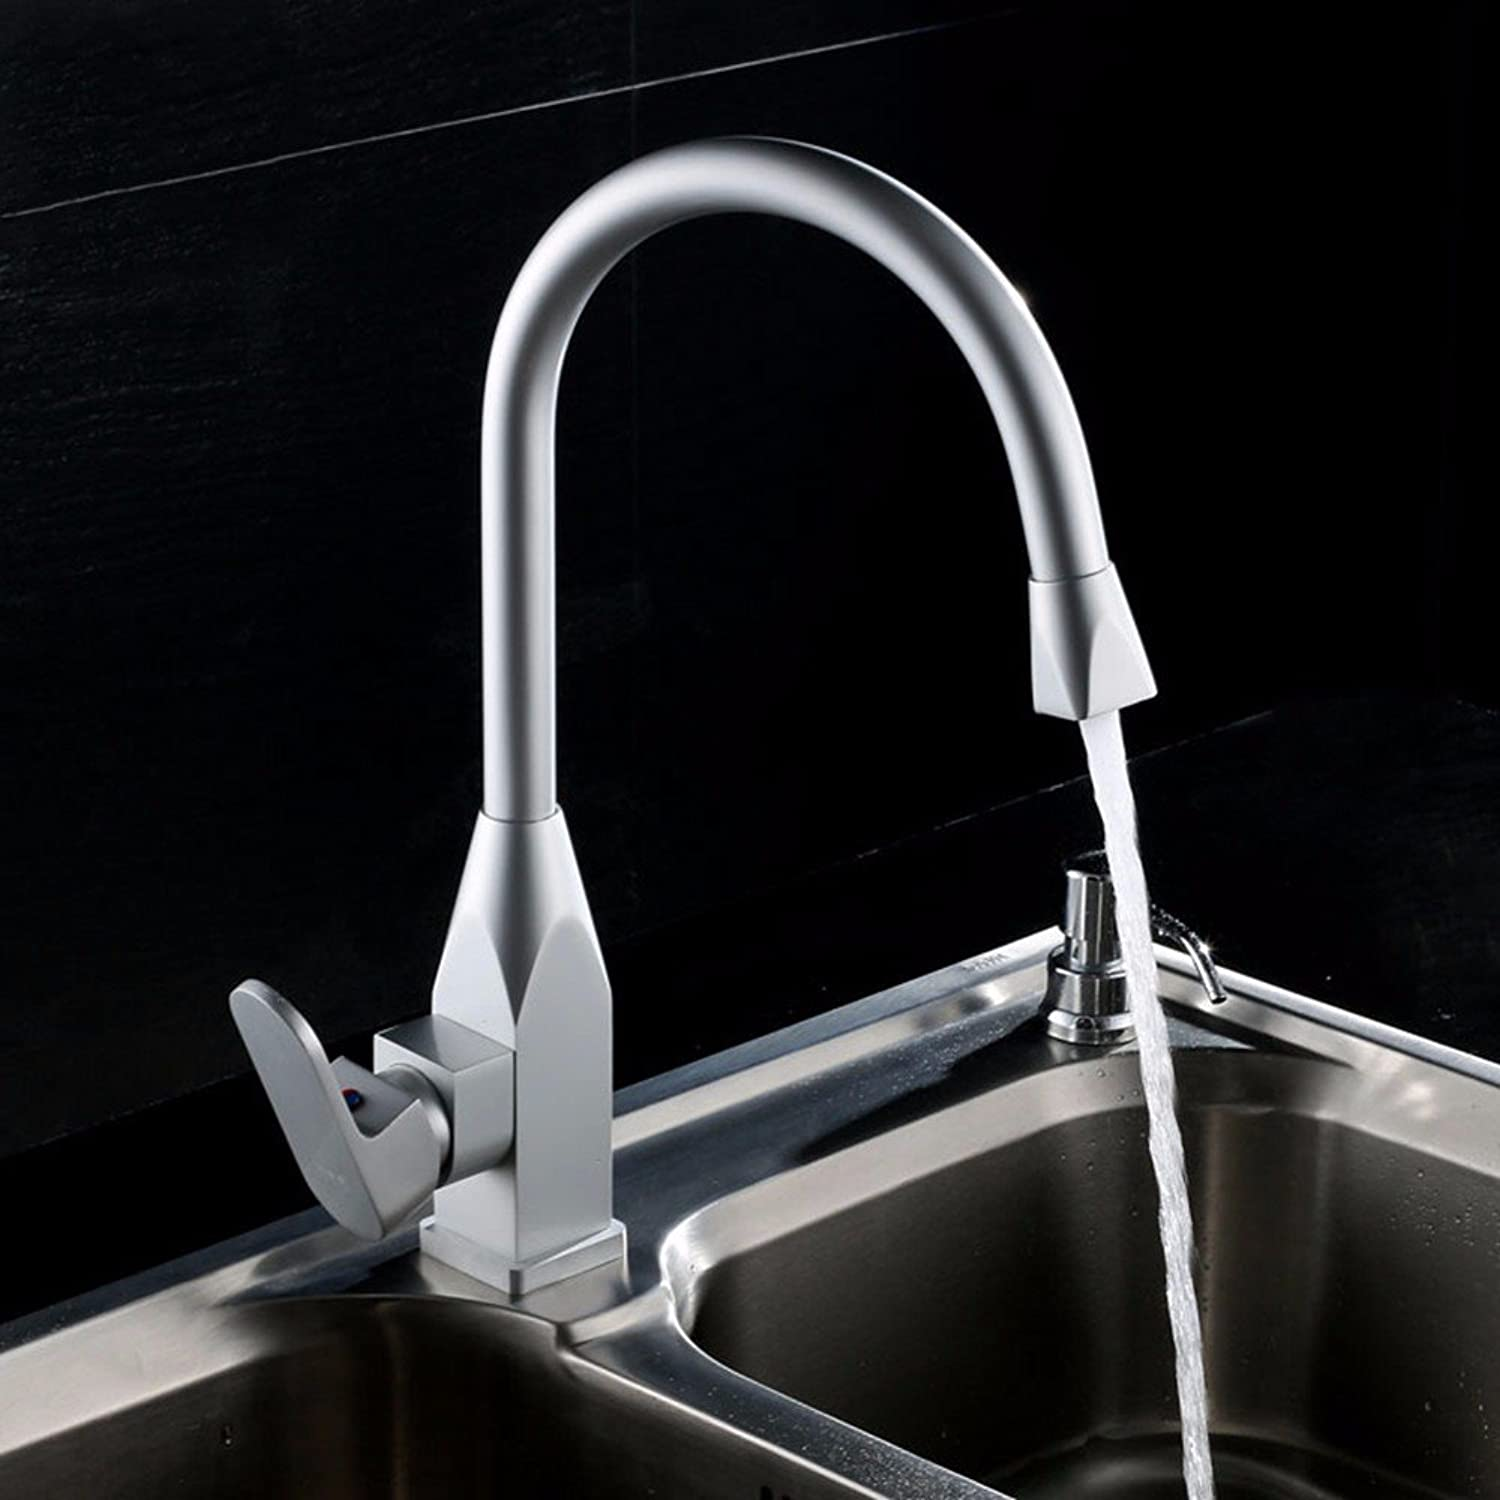 Hlluya Professional Sink Mixer Tap Kitchen Faucet Aluminum, hot and cold bath, basin, Single Hole Sink mixer 6